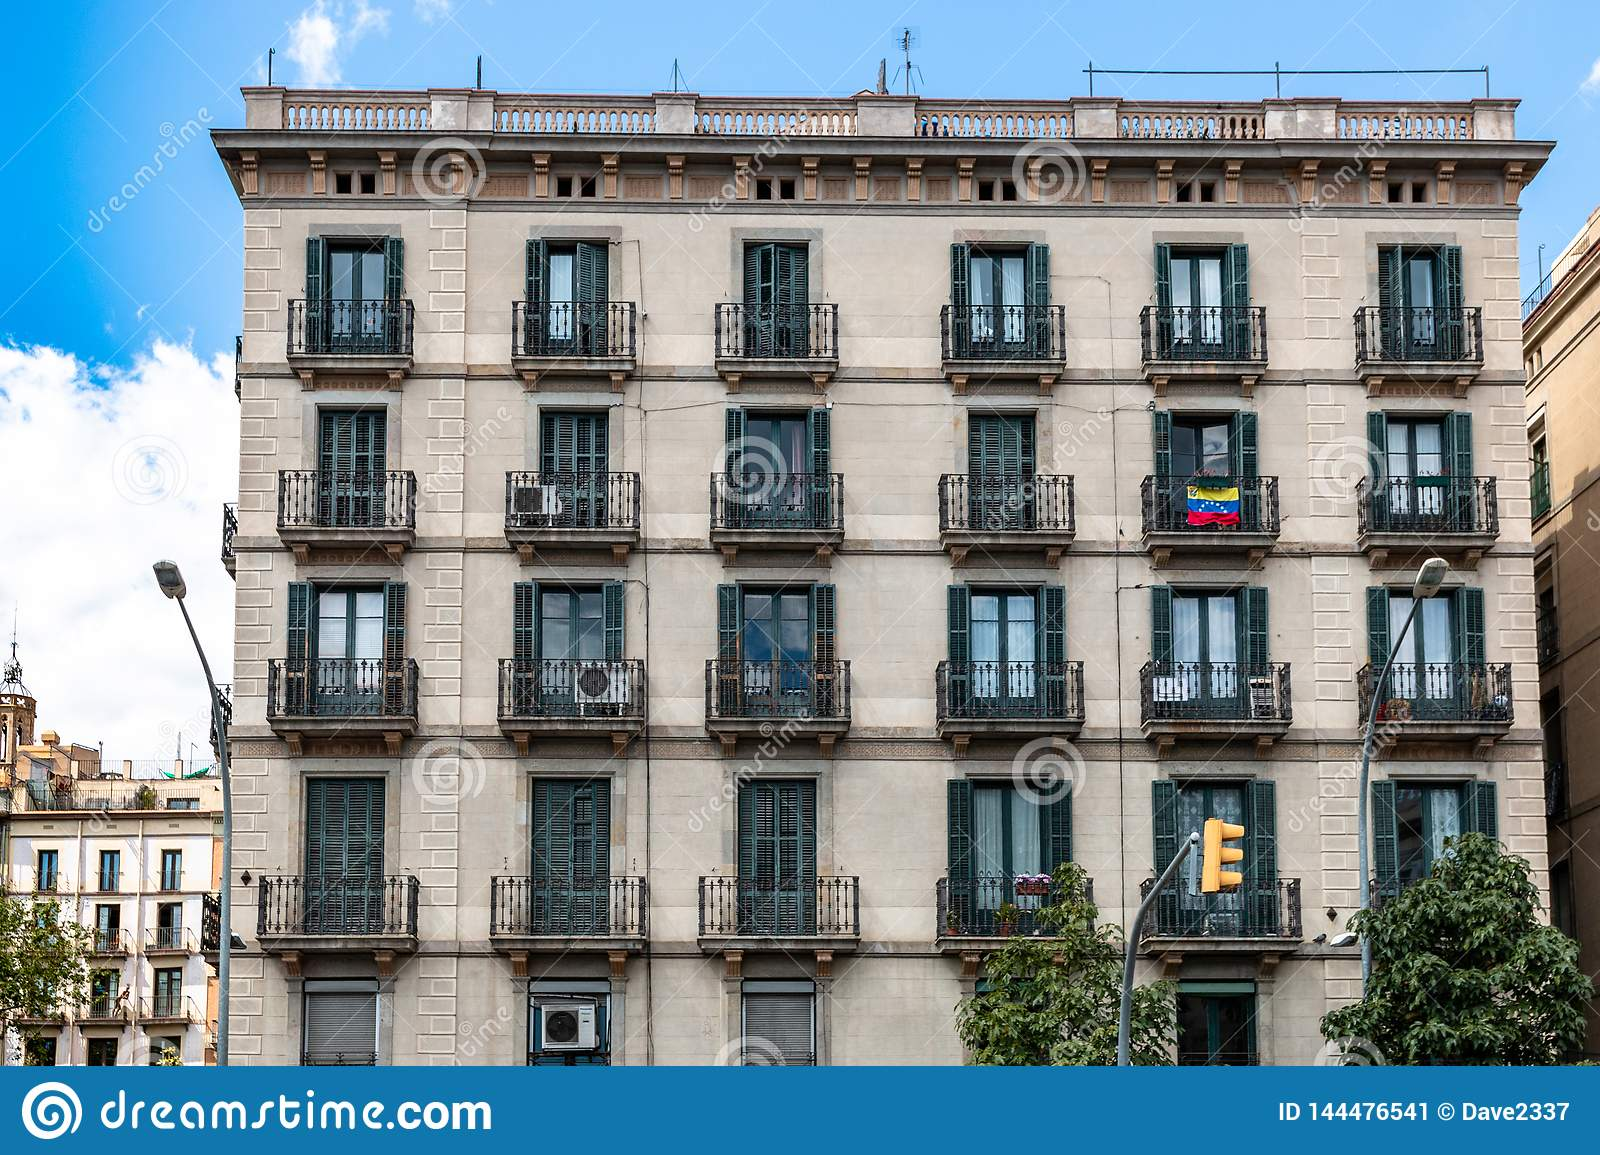 Apartment House In Barcelona, Spain Stock Image - Image of ...